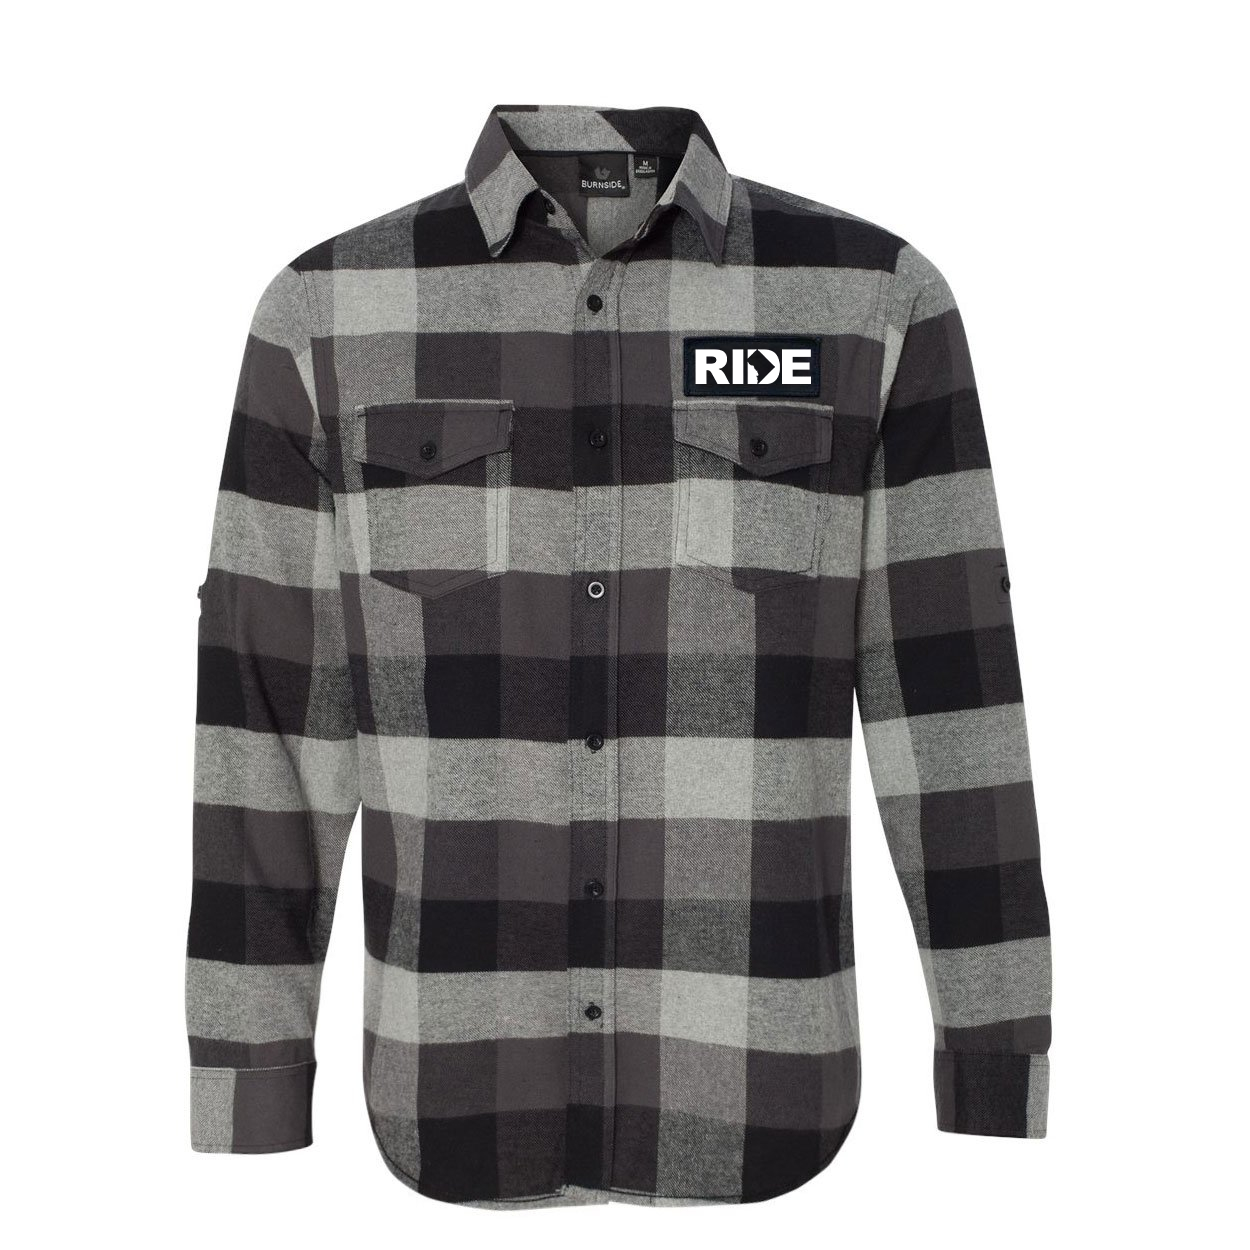 Ride District of Columbia Classic Unisex Long Sleeve Woven Patch Flannel Shirt Black/Gray (White Logo)